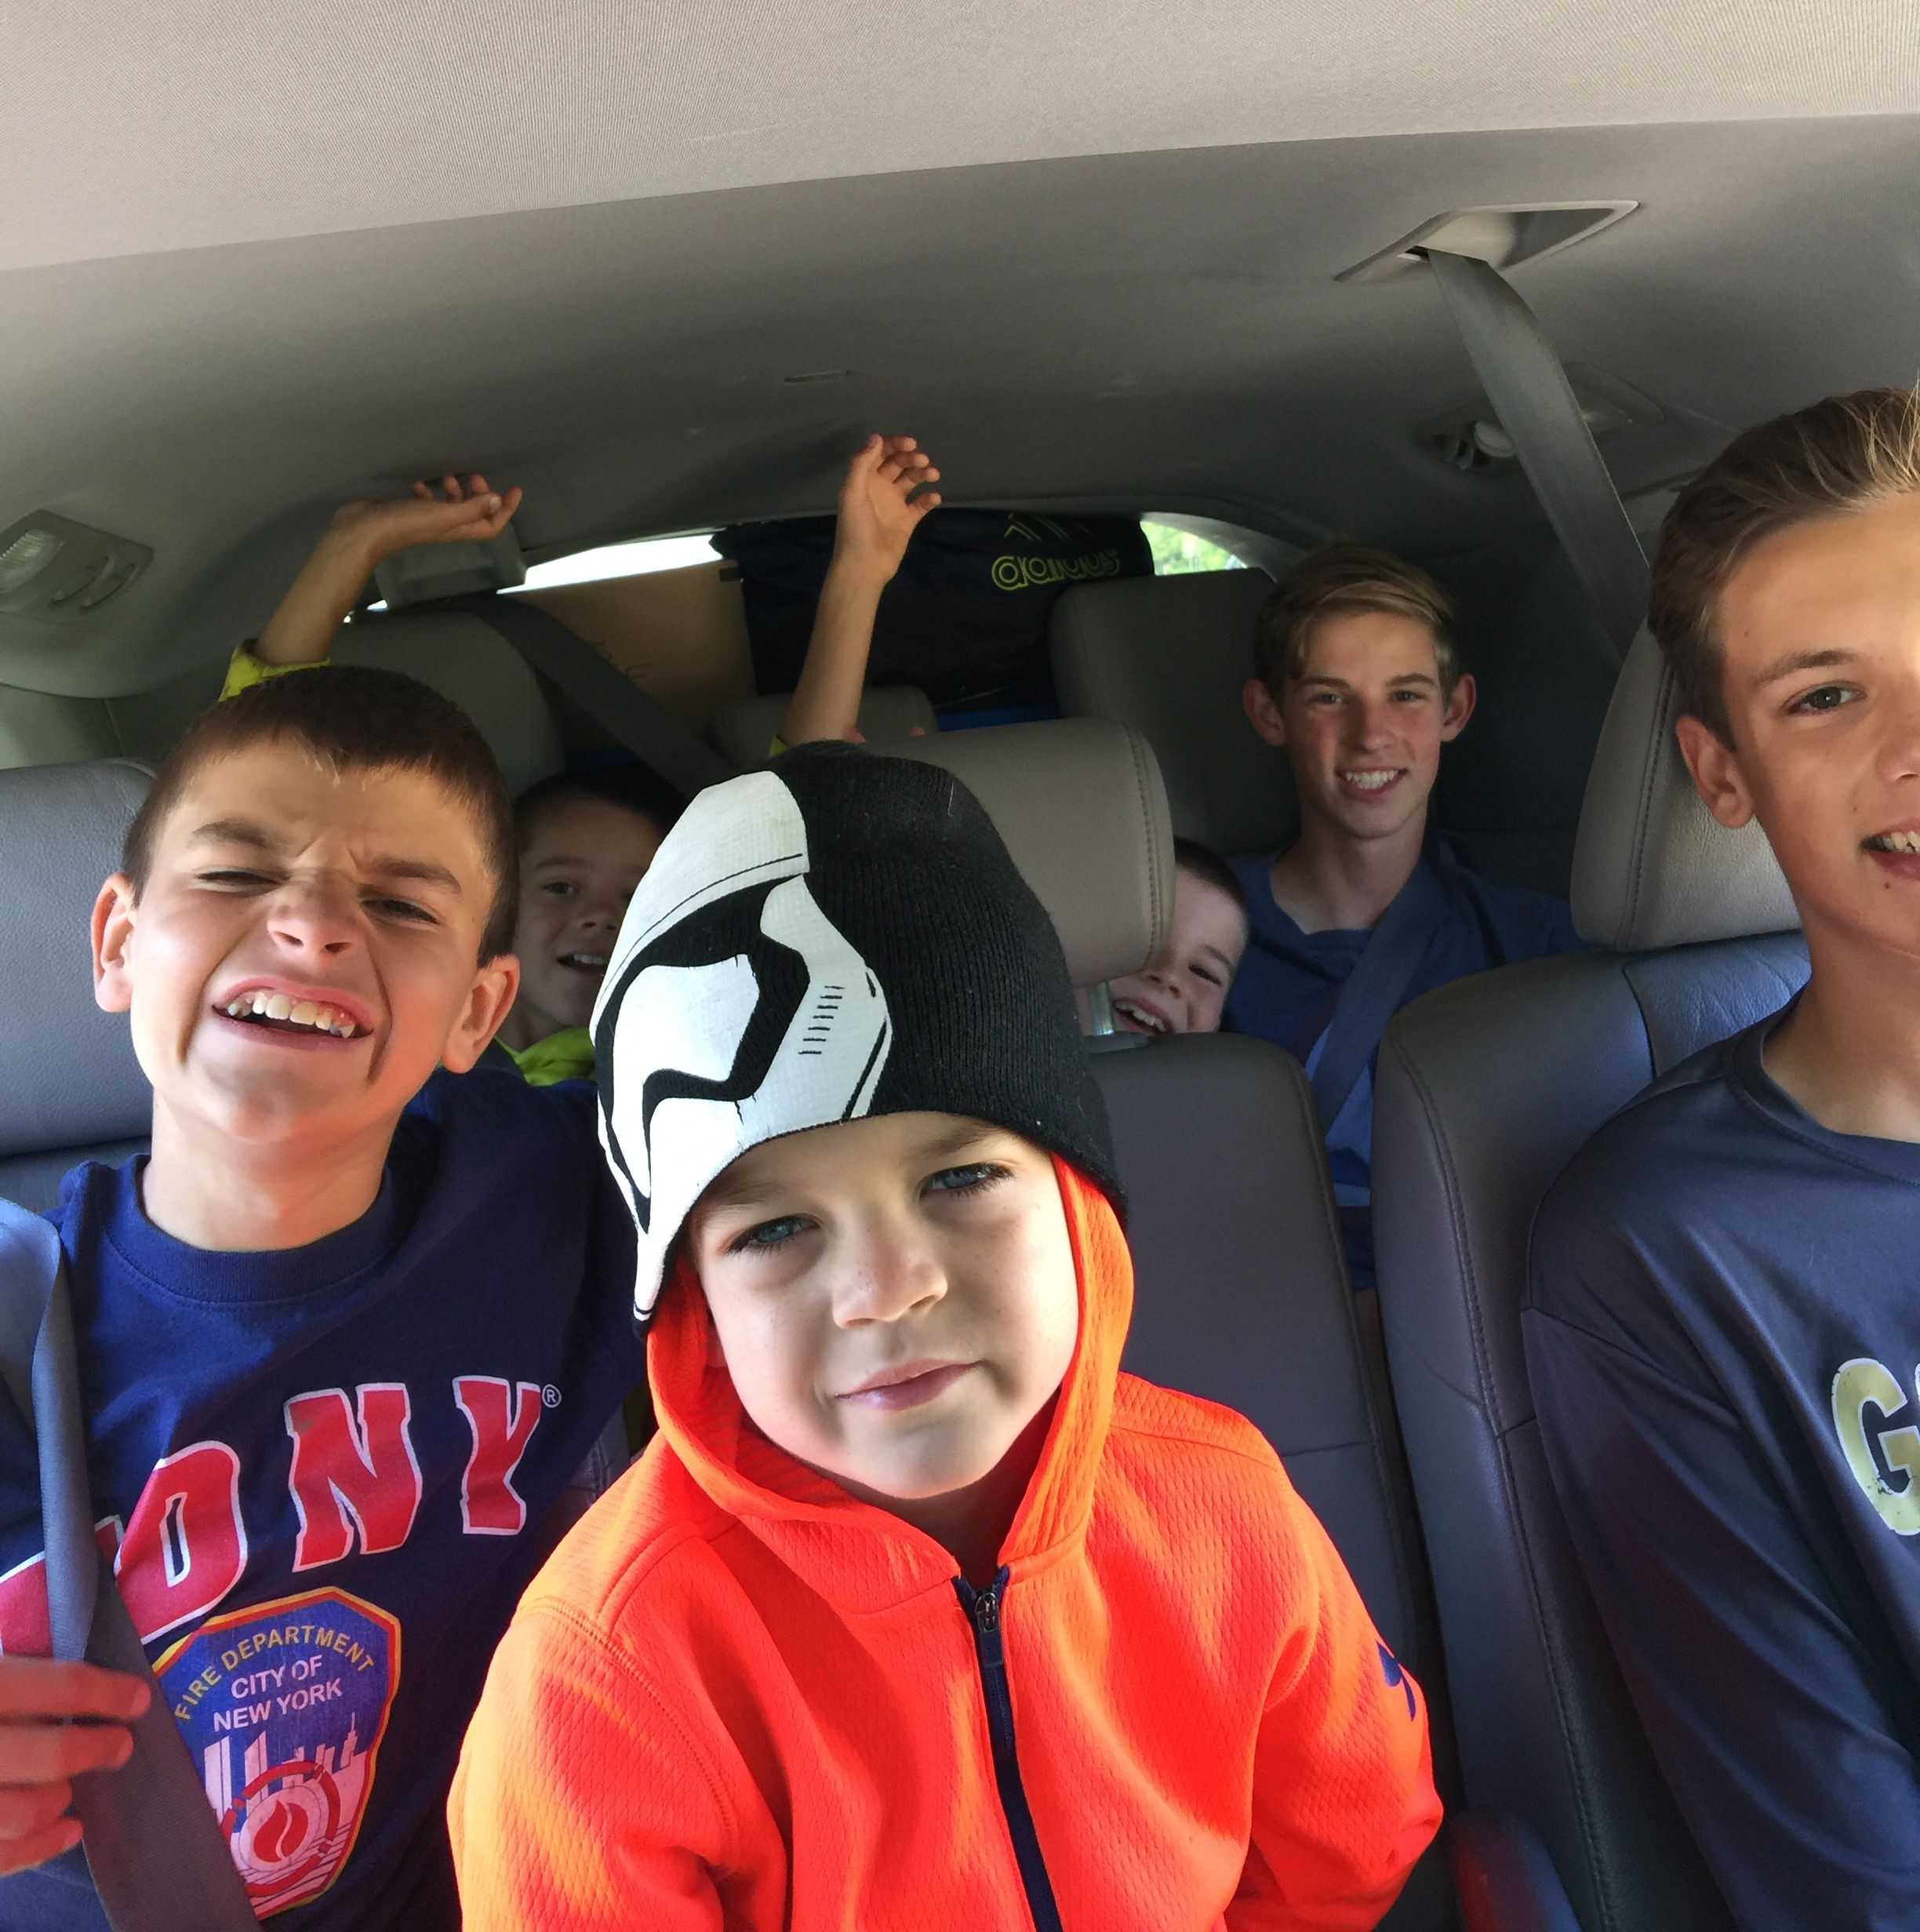 Cousin fun in the van!